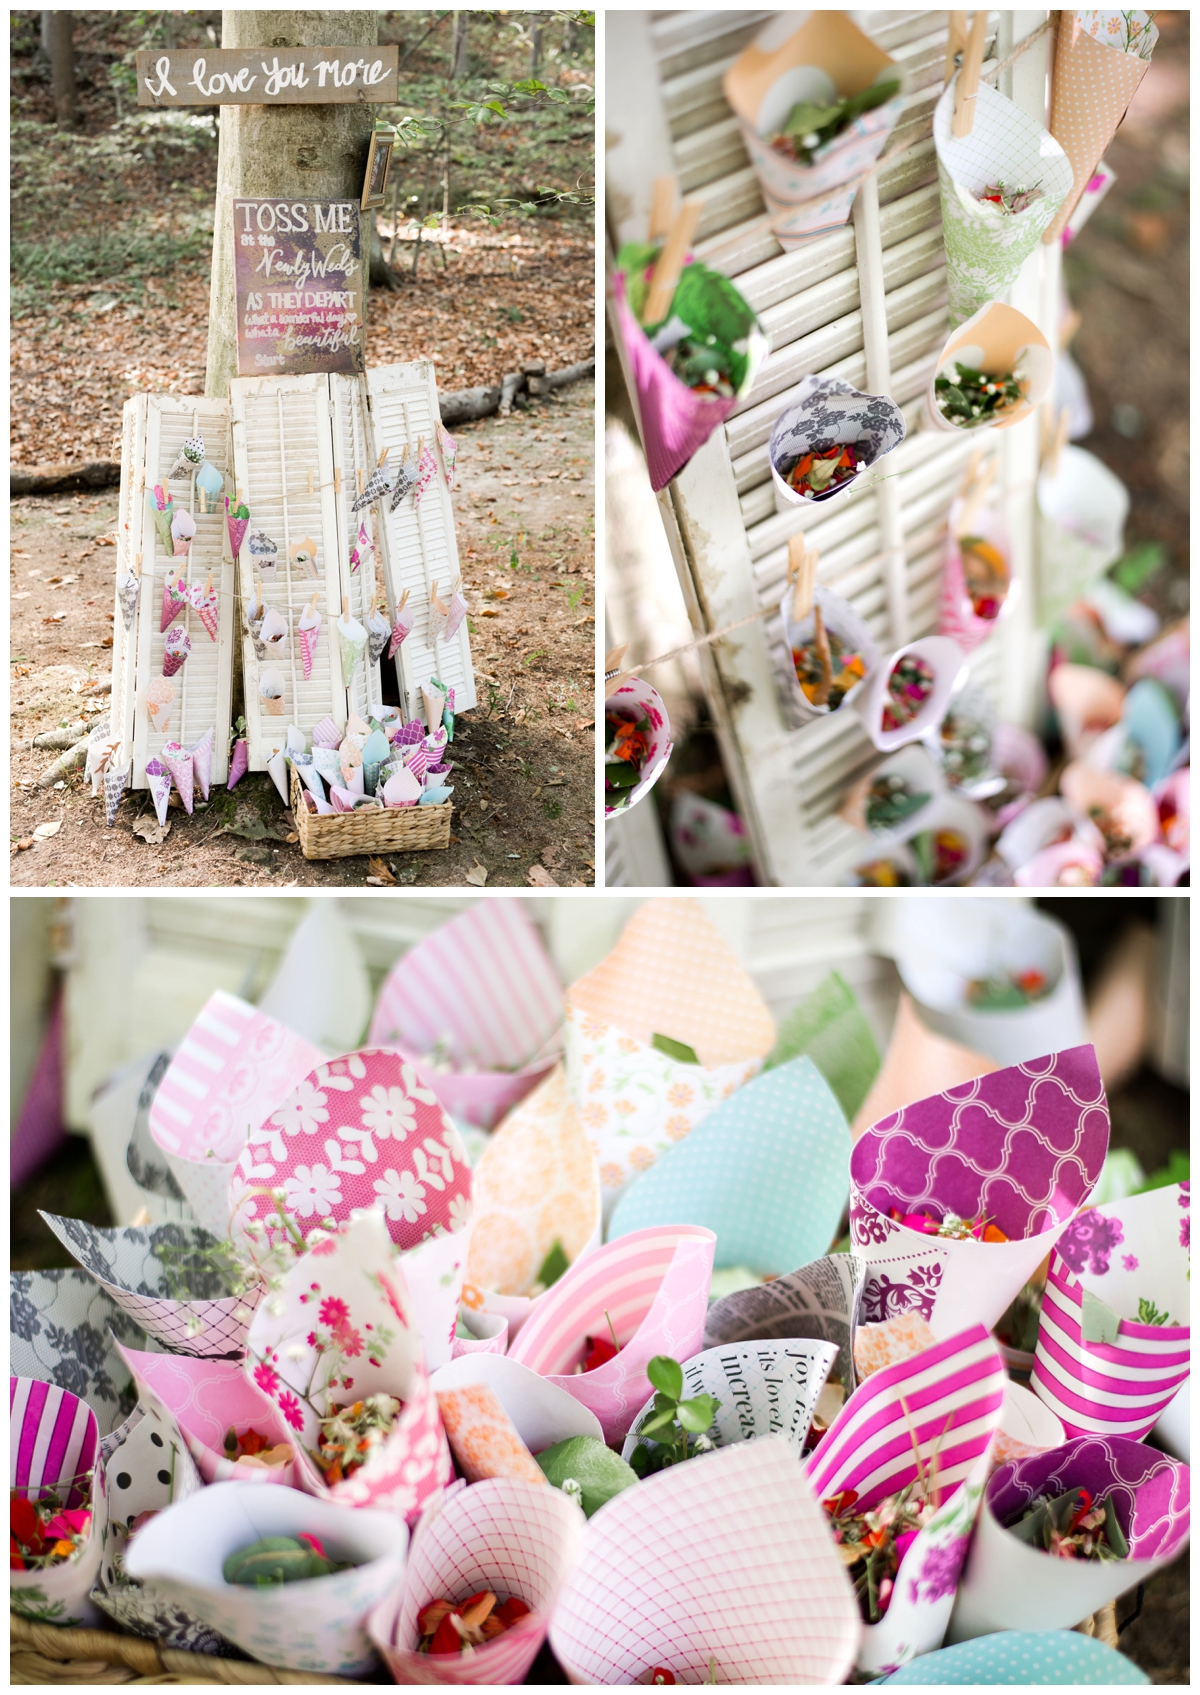 Paper flutes filled with flowers to throw after ceremony at a shabby chic outdoor rustic wedding in the woods